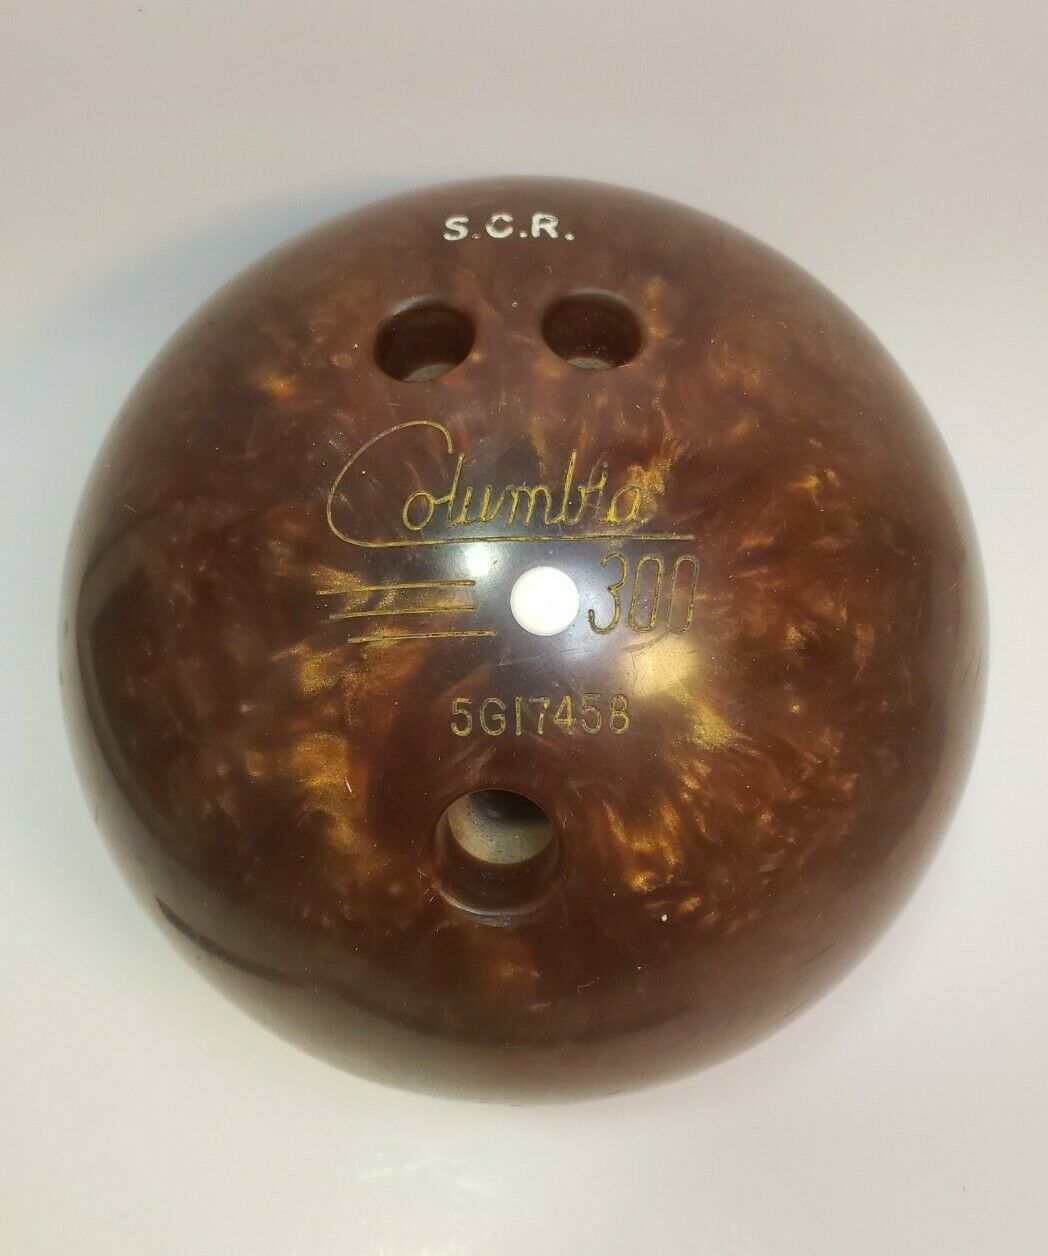 Primary image for Columbia 300 White Dot Vintage Drilled Bowling Ball